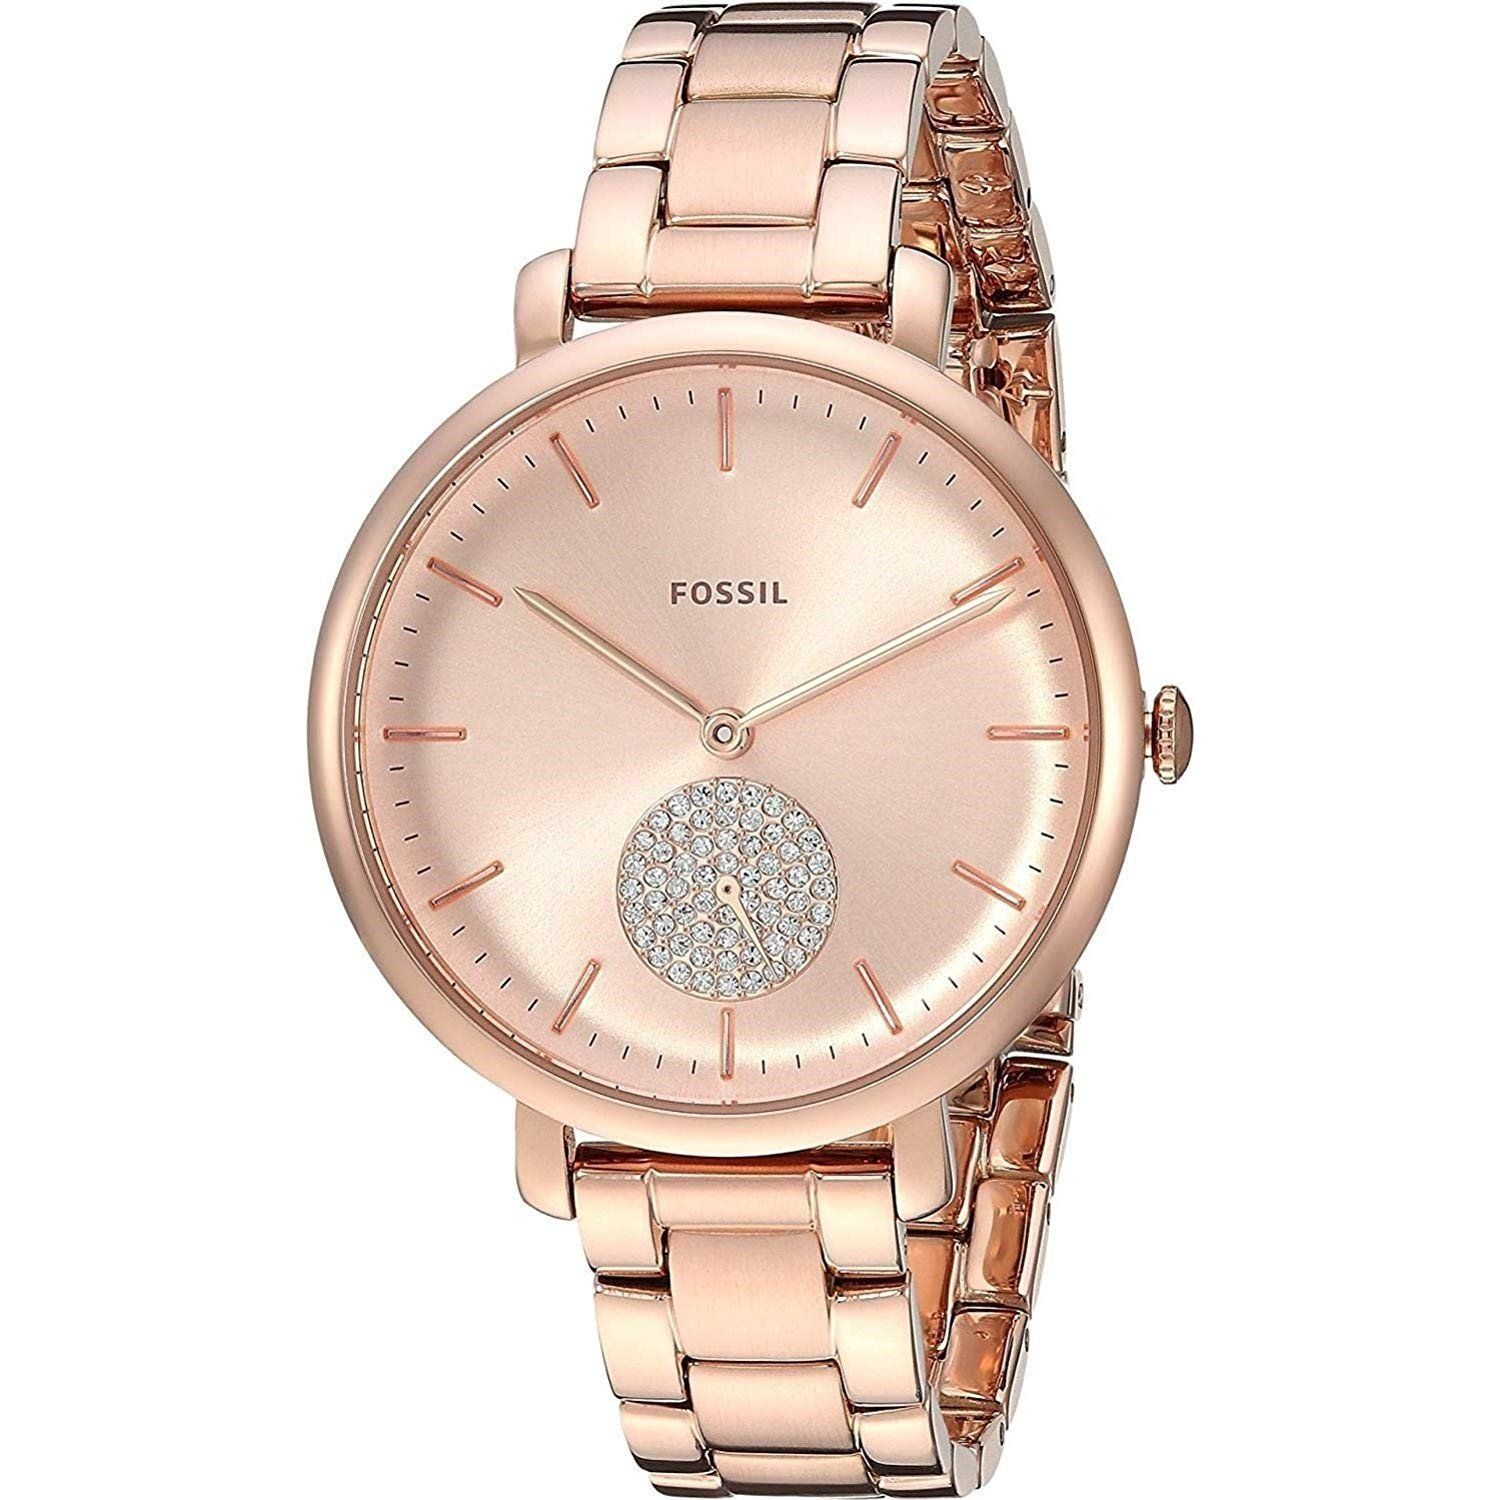 d4dce0e6fd23 Fossil Women s ES4438 Jacqueline Crystal Rose-Tone Stainless Steel Watch